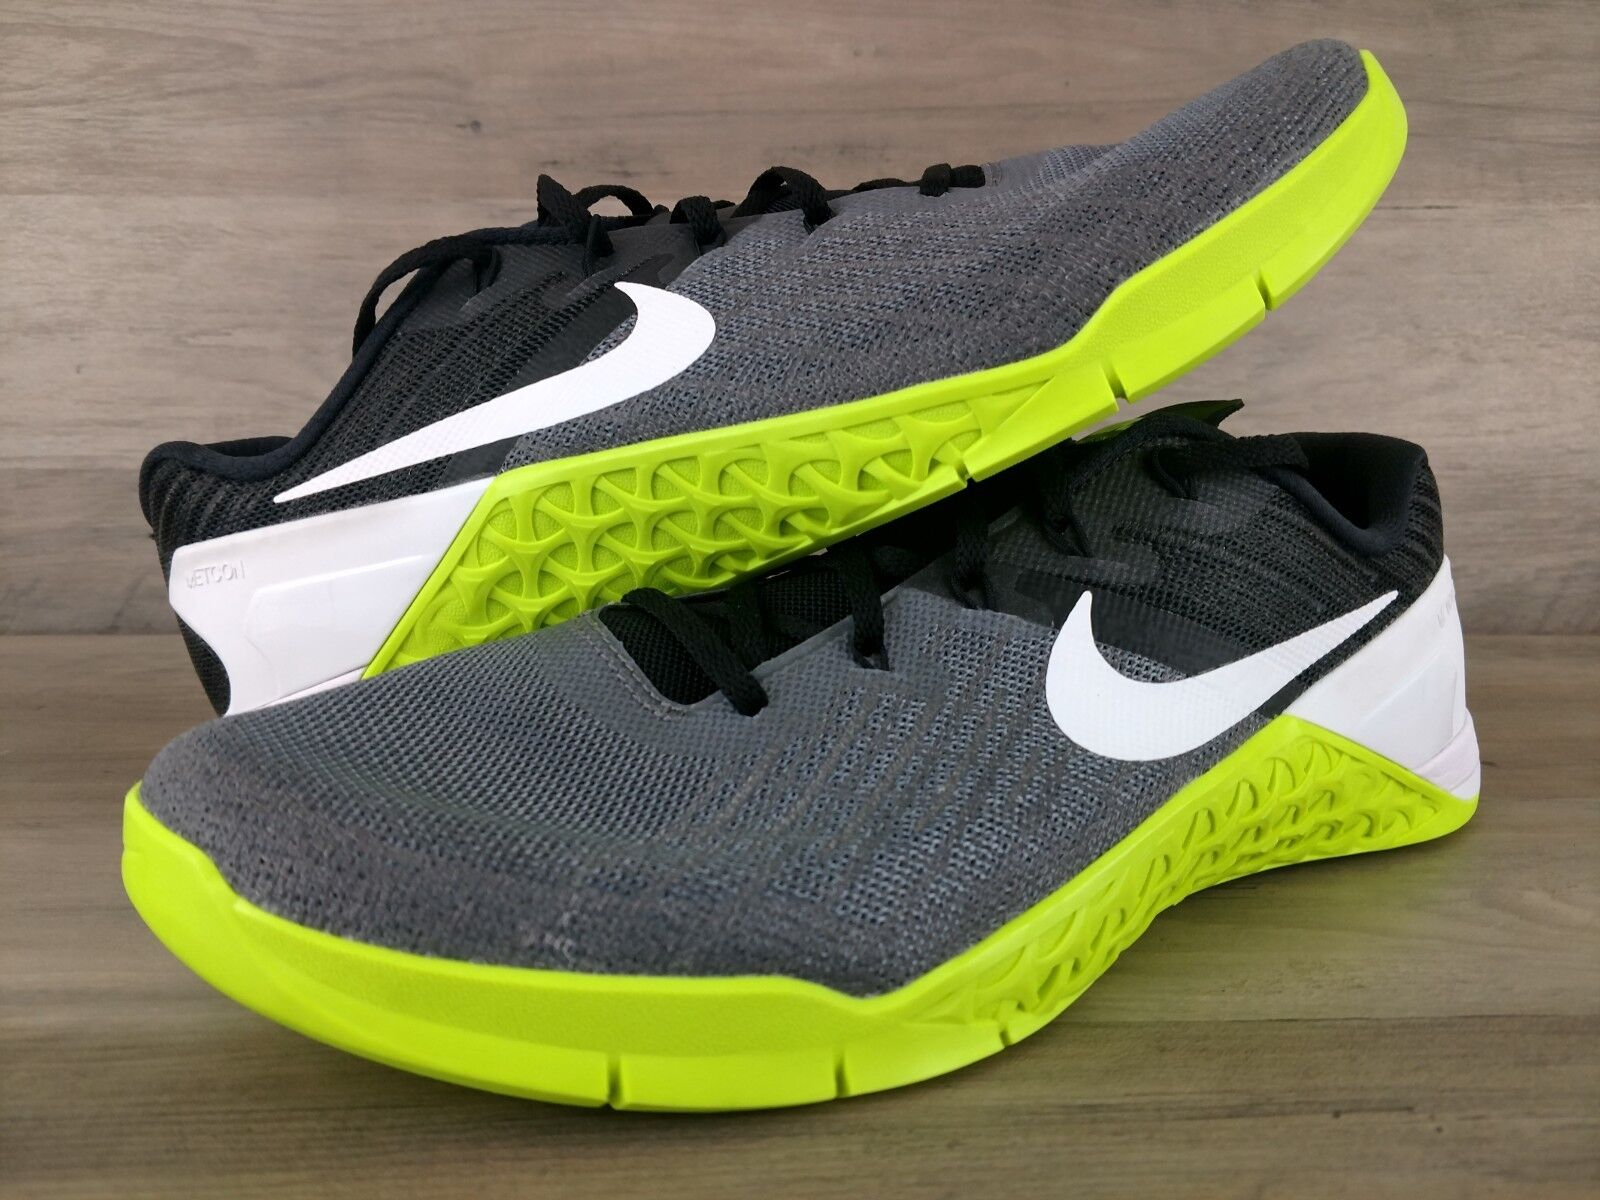 Nike Metcon 3 Training shoes Men's Size 11 Grey Black Volt White 852928-001